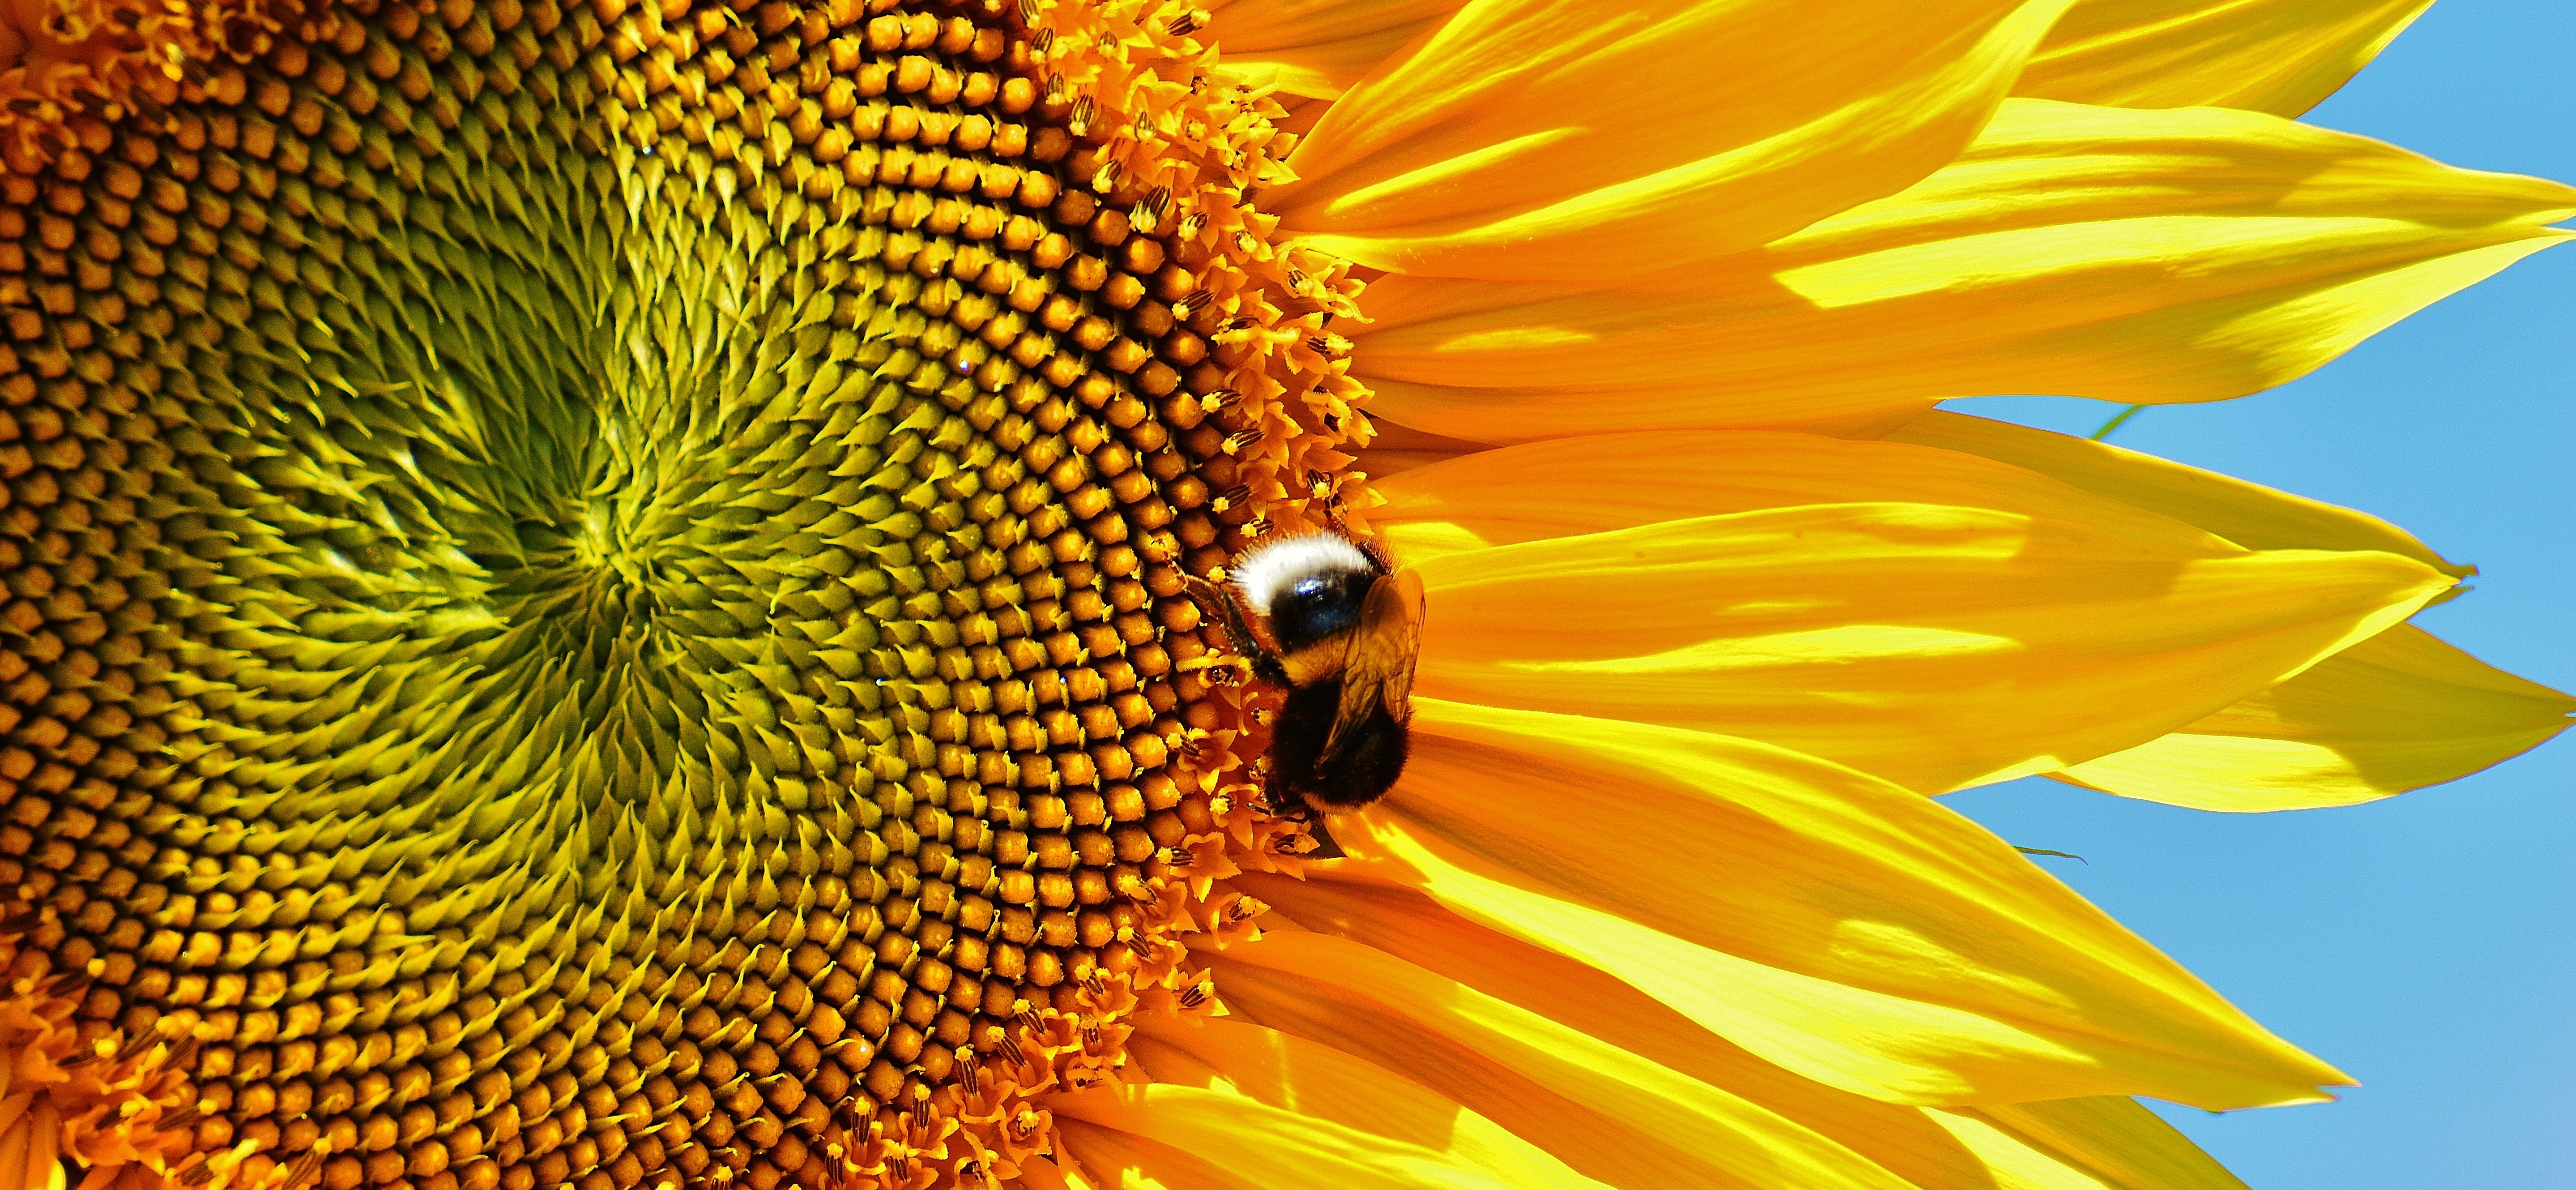 Sunflowers are bee-friendly flowers